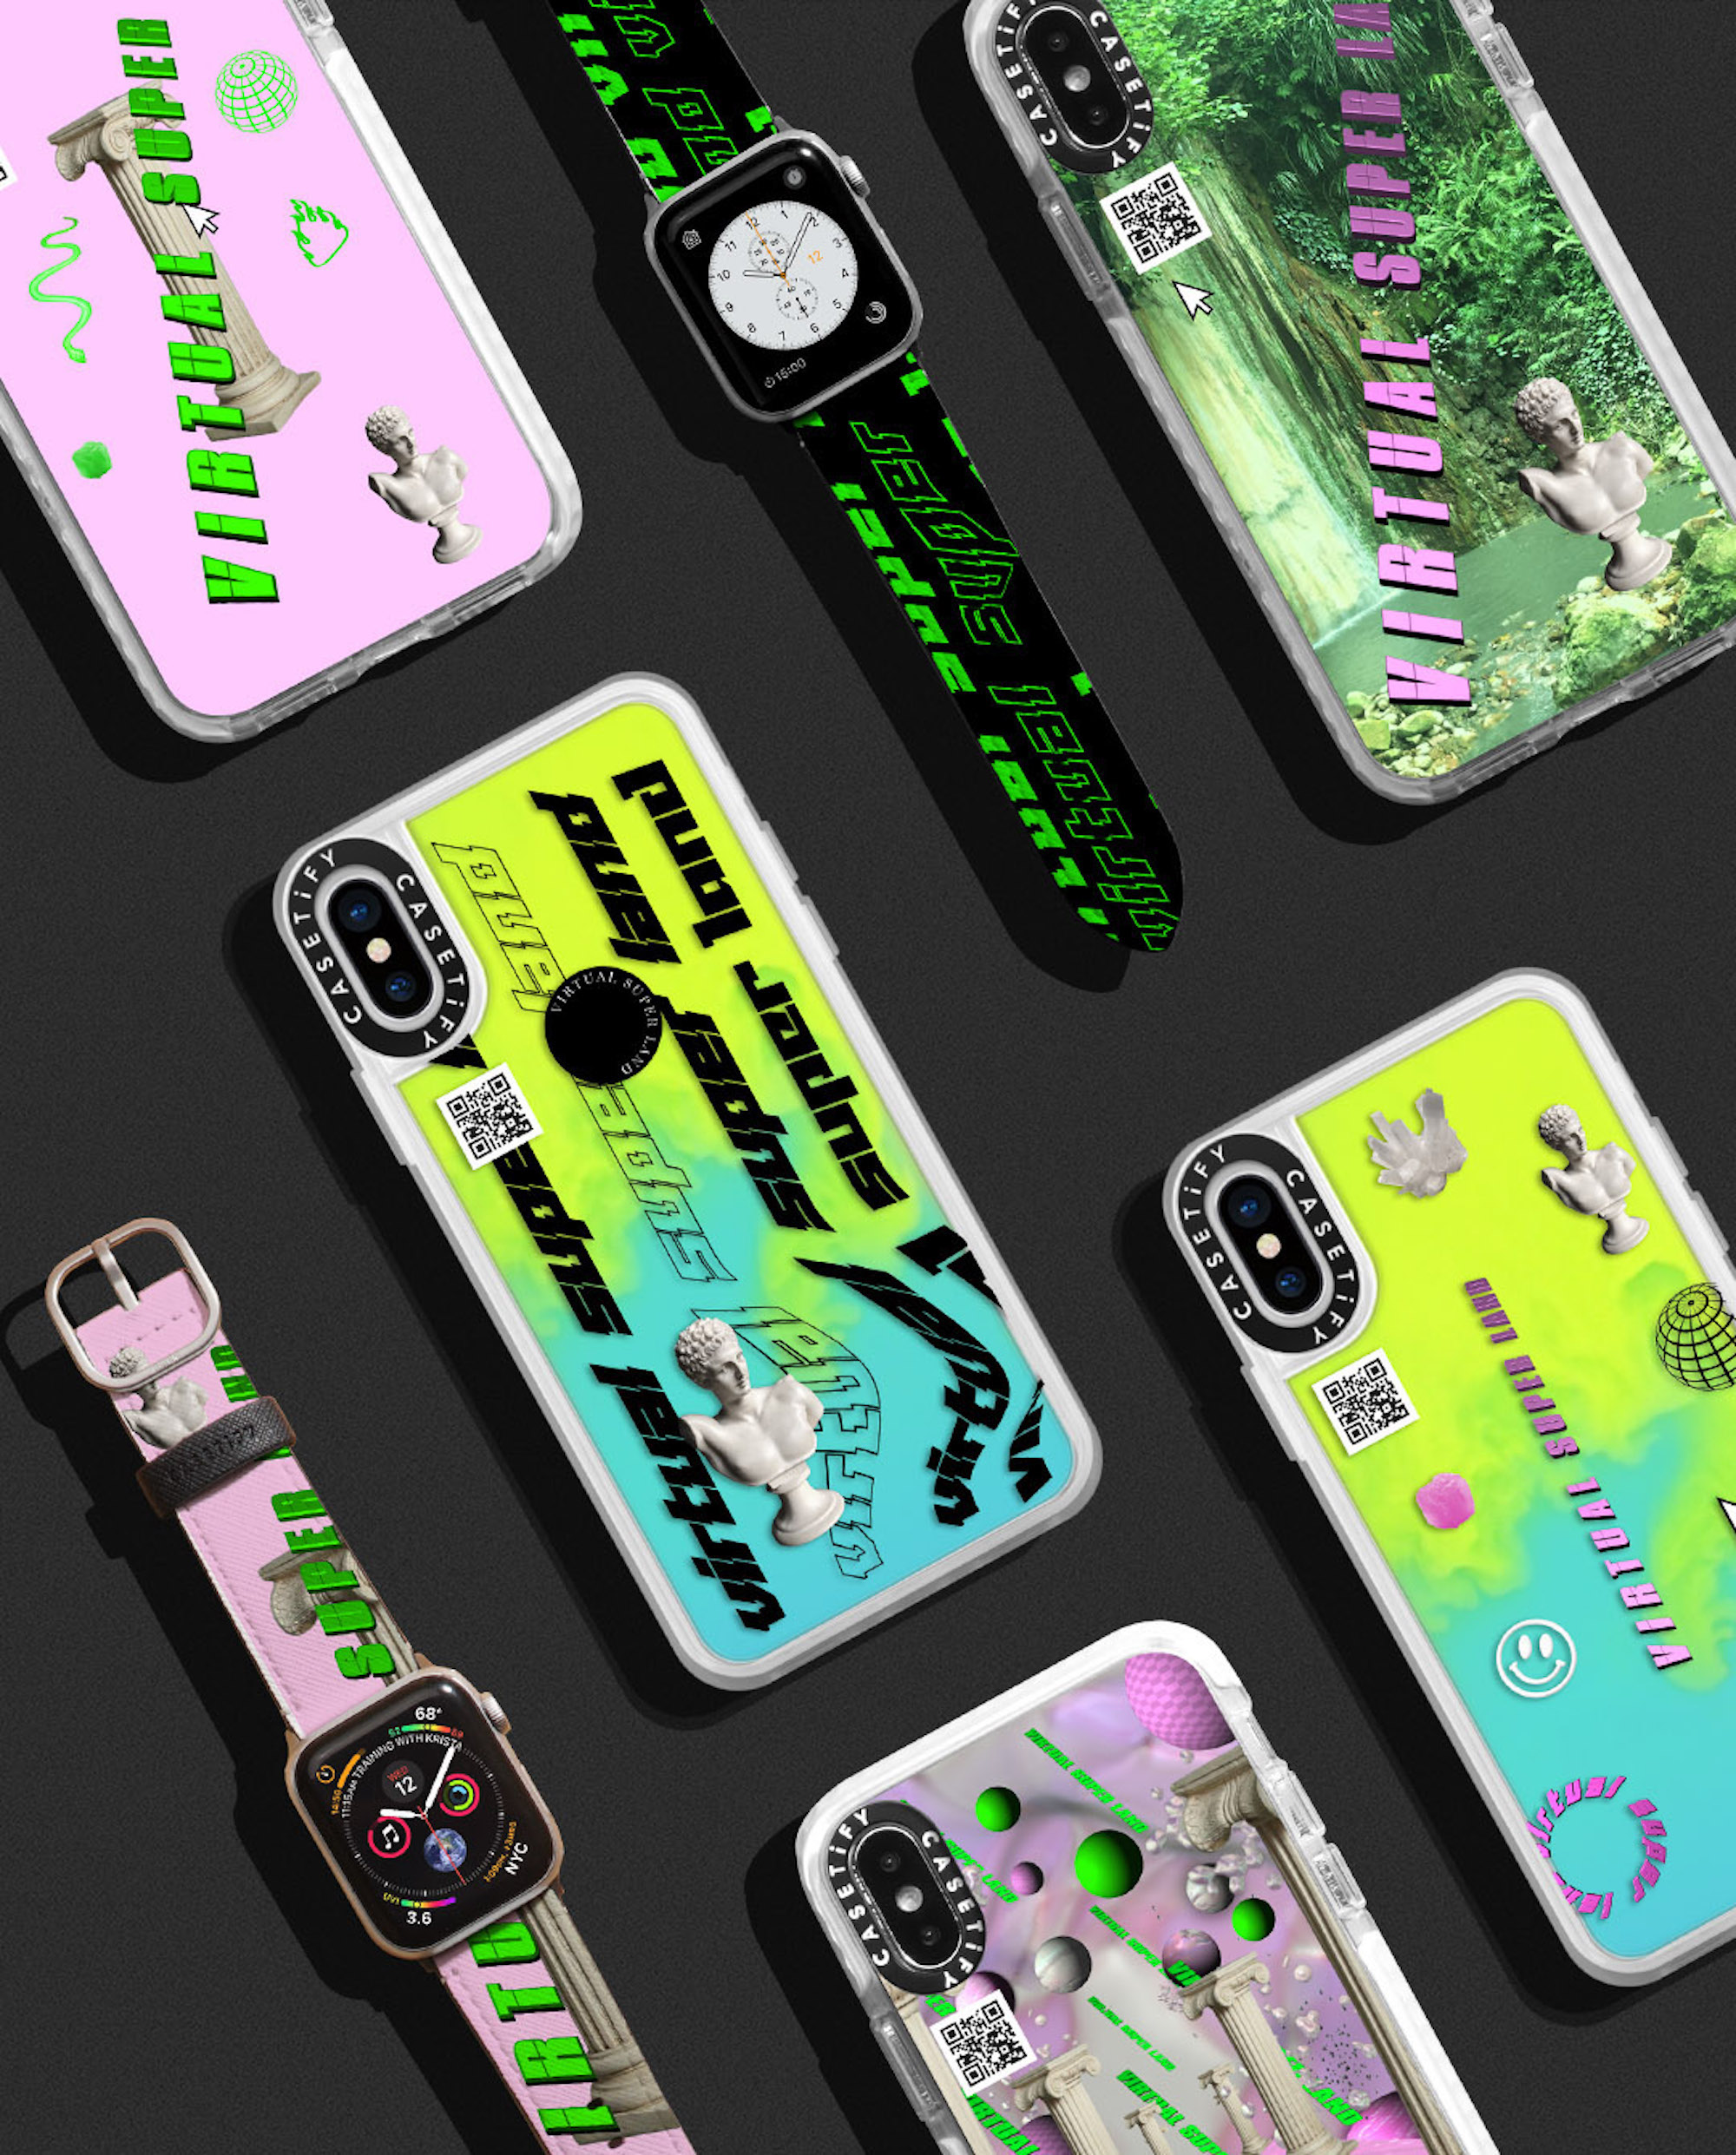 Wonderland commercial virtual super land x CASETiFY phone cases and watch straps